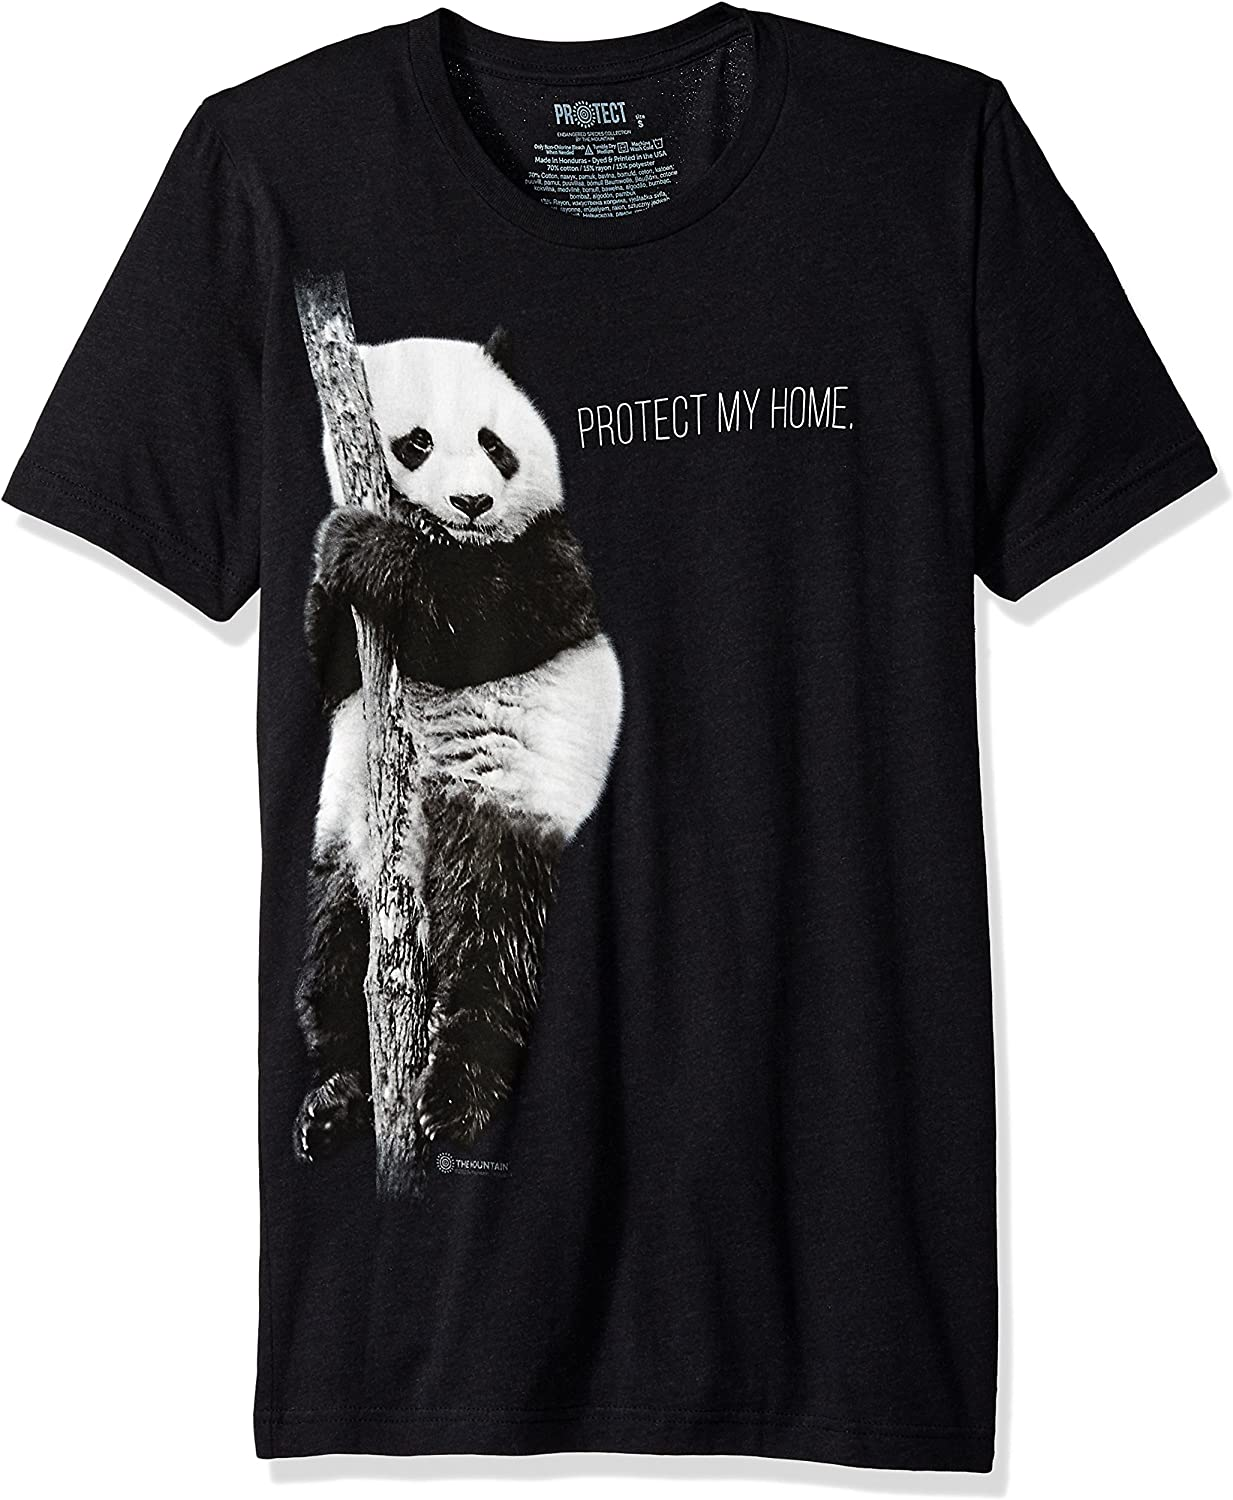 The Mountain Men's Wildlife, Protect Panda's Home T-Shirt